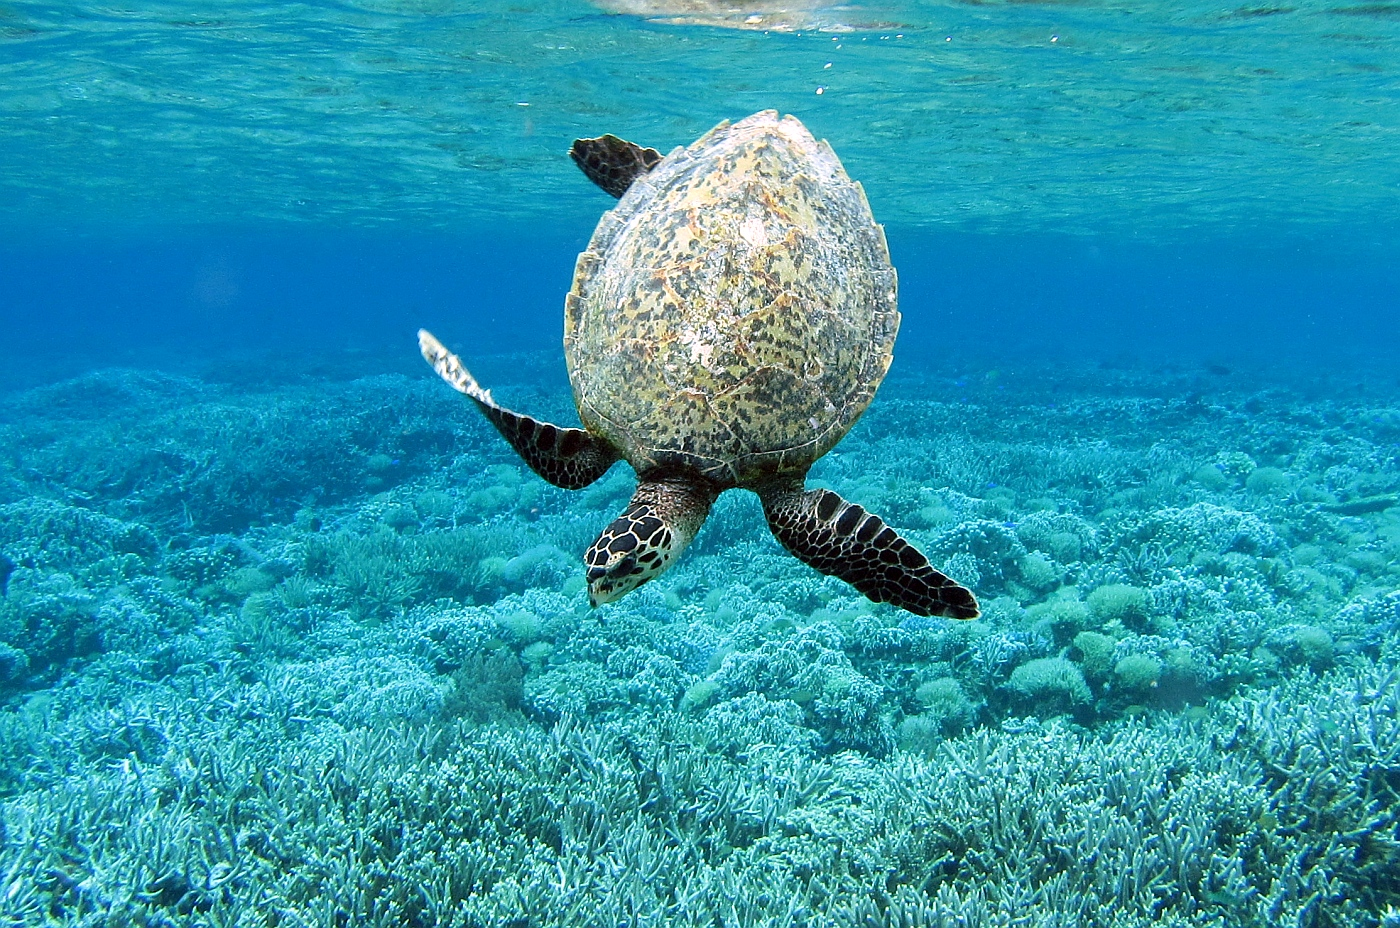 A young hawksbill turtle dives to the coral seafloor. PHOTO by SUE HACKING